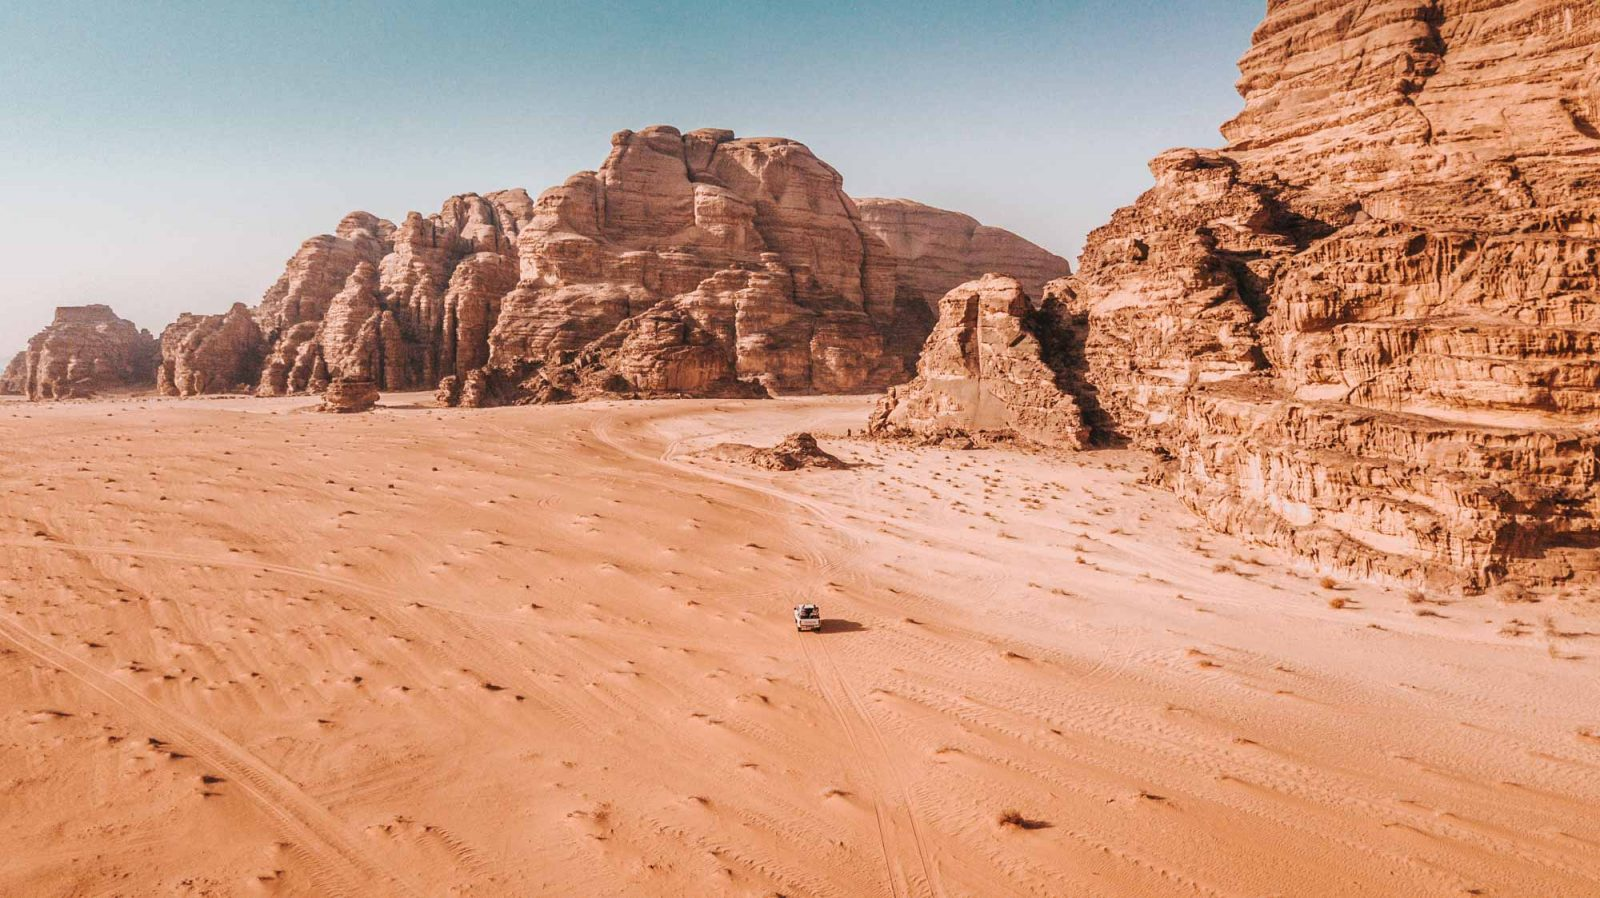 Ecotourism in Jordan is on the rise